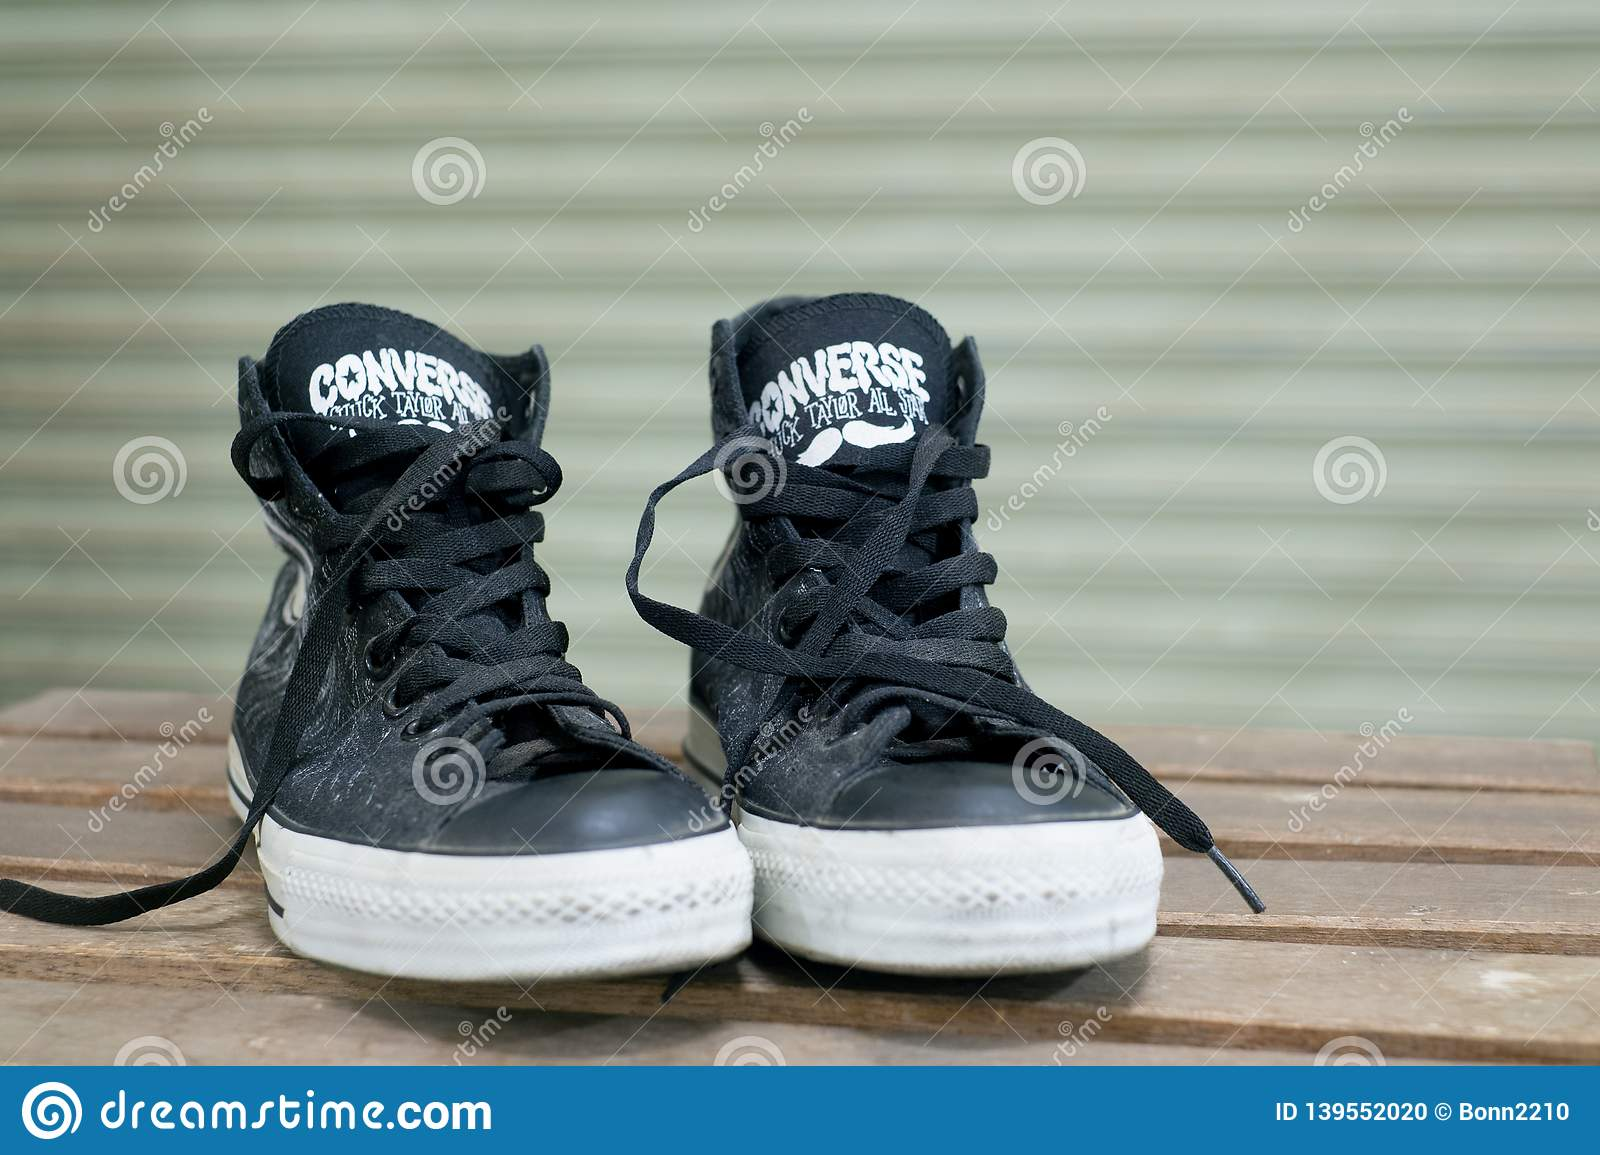 32f63453f6d6 Converse All Star Chuck Taylor designed by Mamafaka Thai Graffiti Artist  the character of big eye called Mr. Hellyeah and Mamafaka passed away a few  year ...